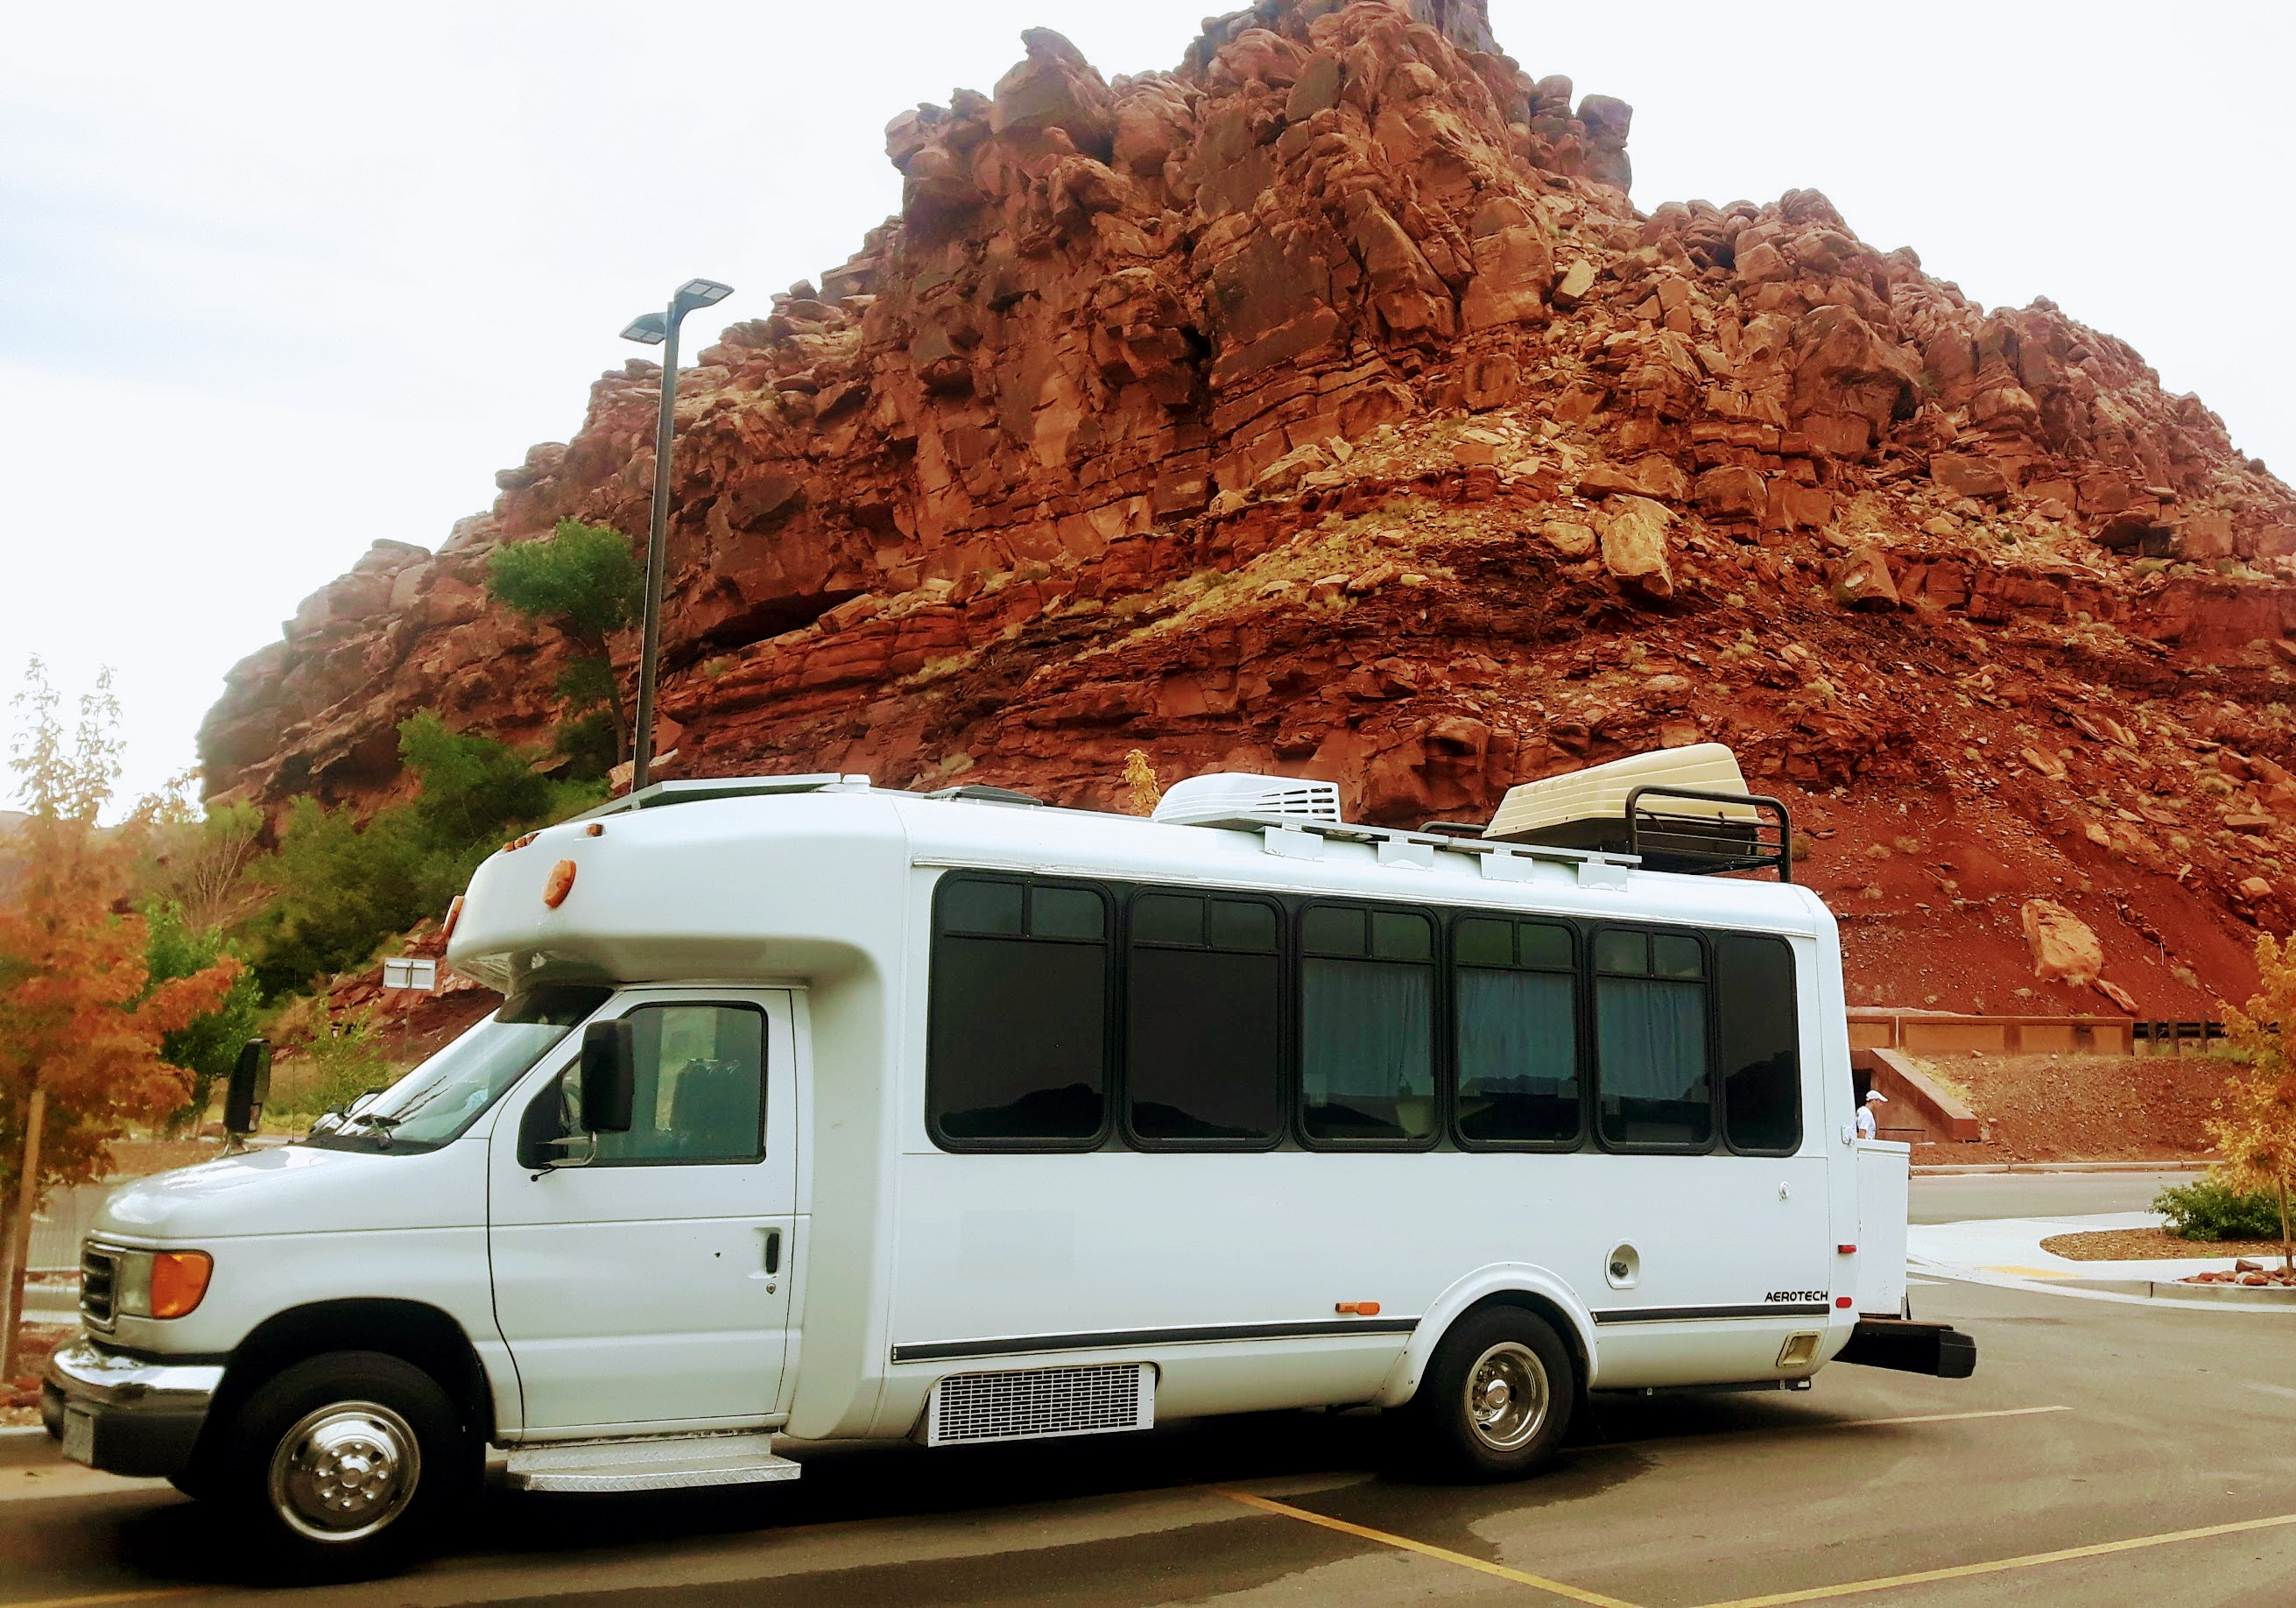 Camperized bus in front of rocks